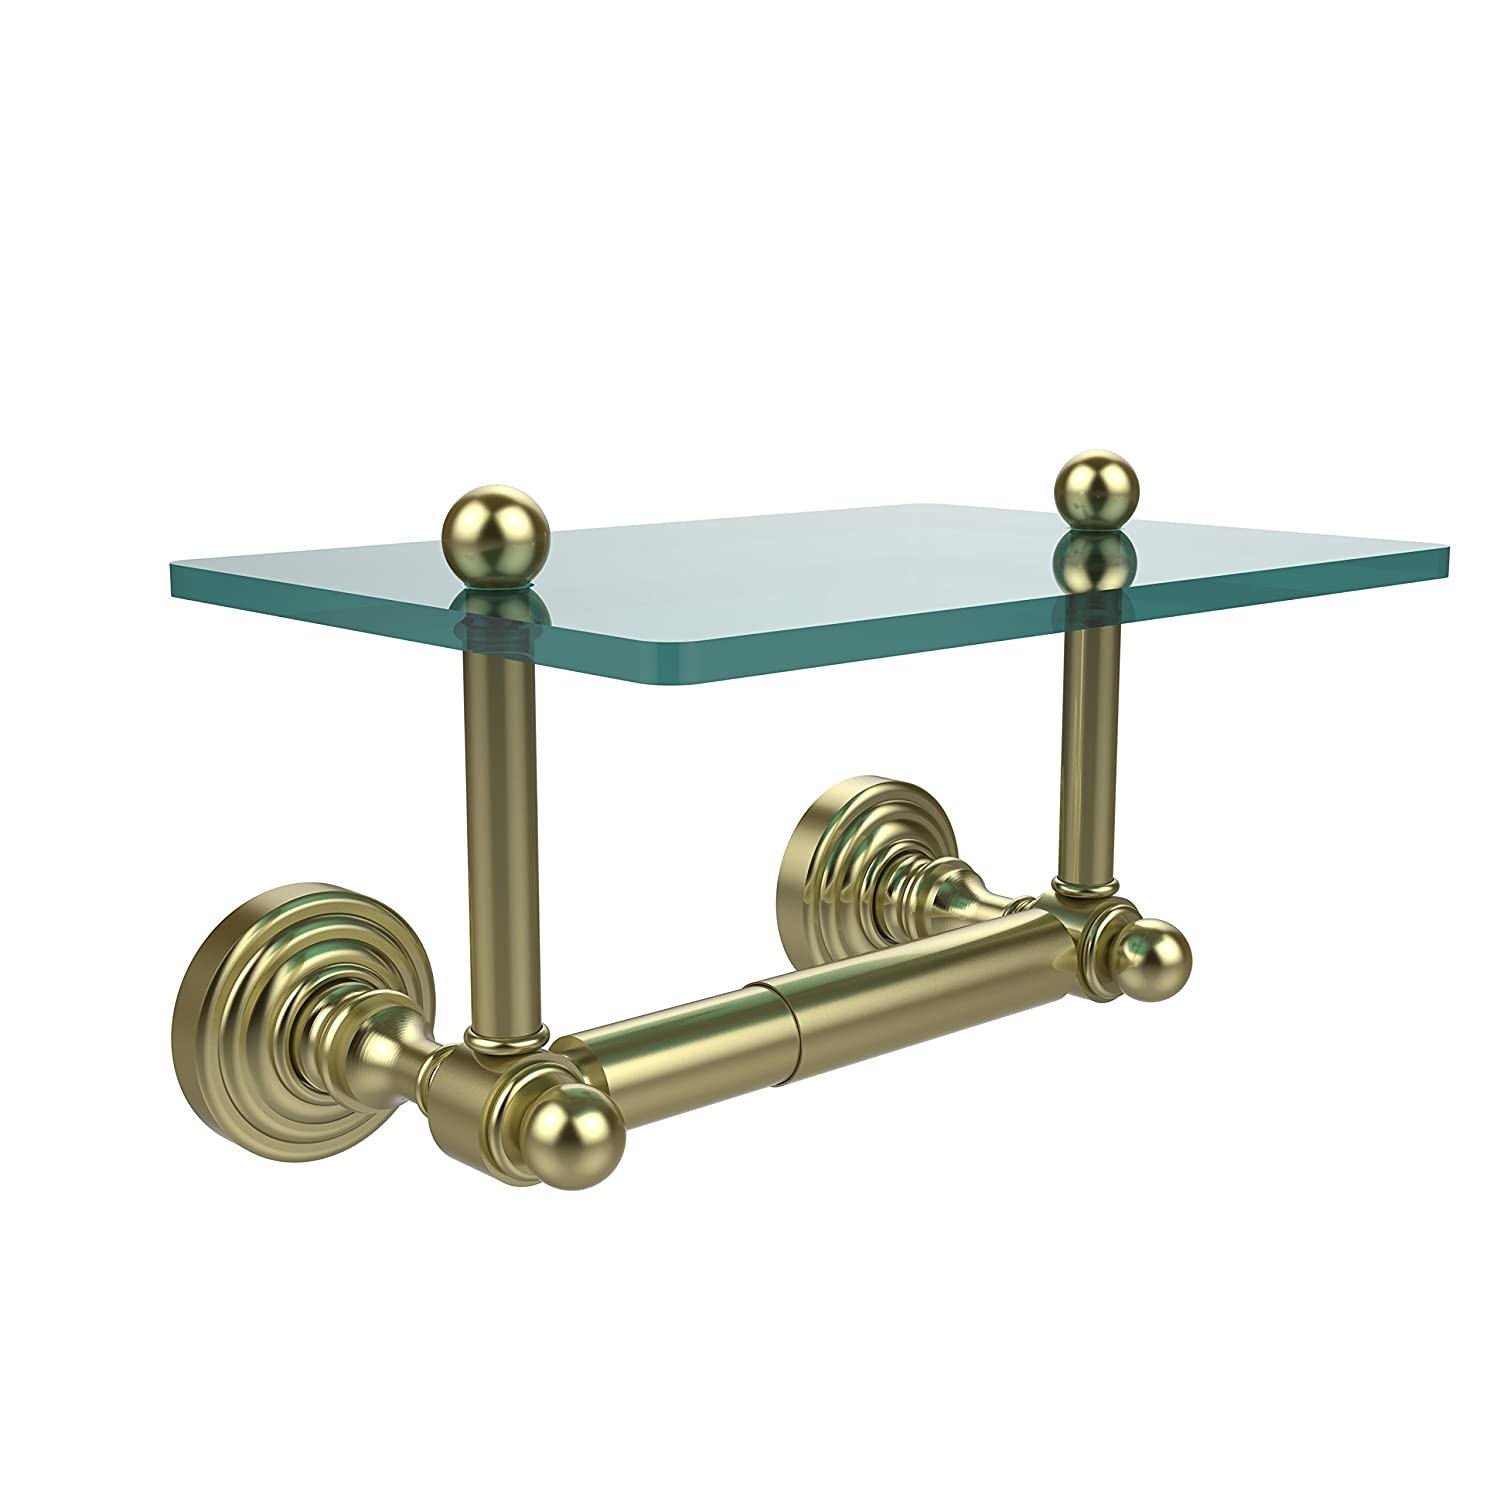 Satin Brass Allied Brass WP-GLT-24-ORB Waverly Place Collection Two Post Toilet Tissue Holder with Glass Shelf Oil Rubbed Bronze